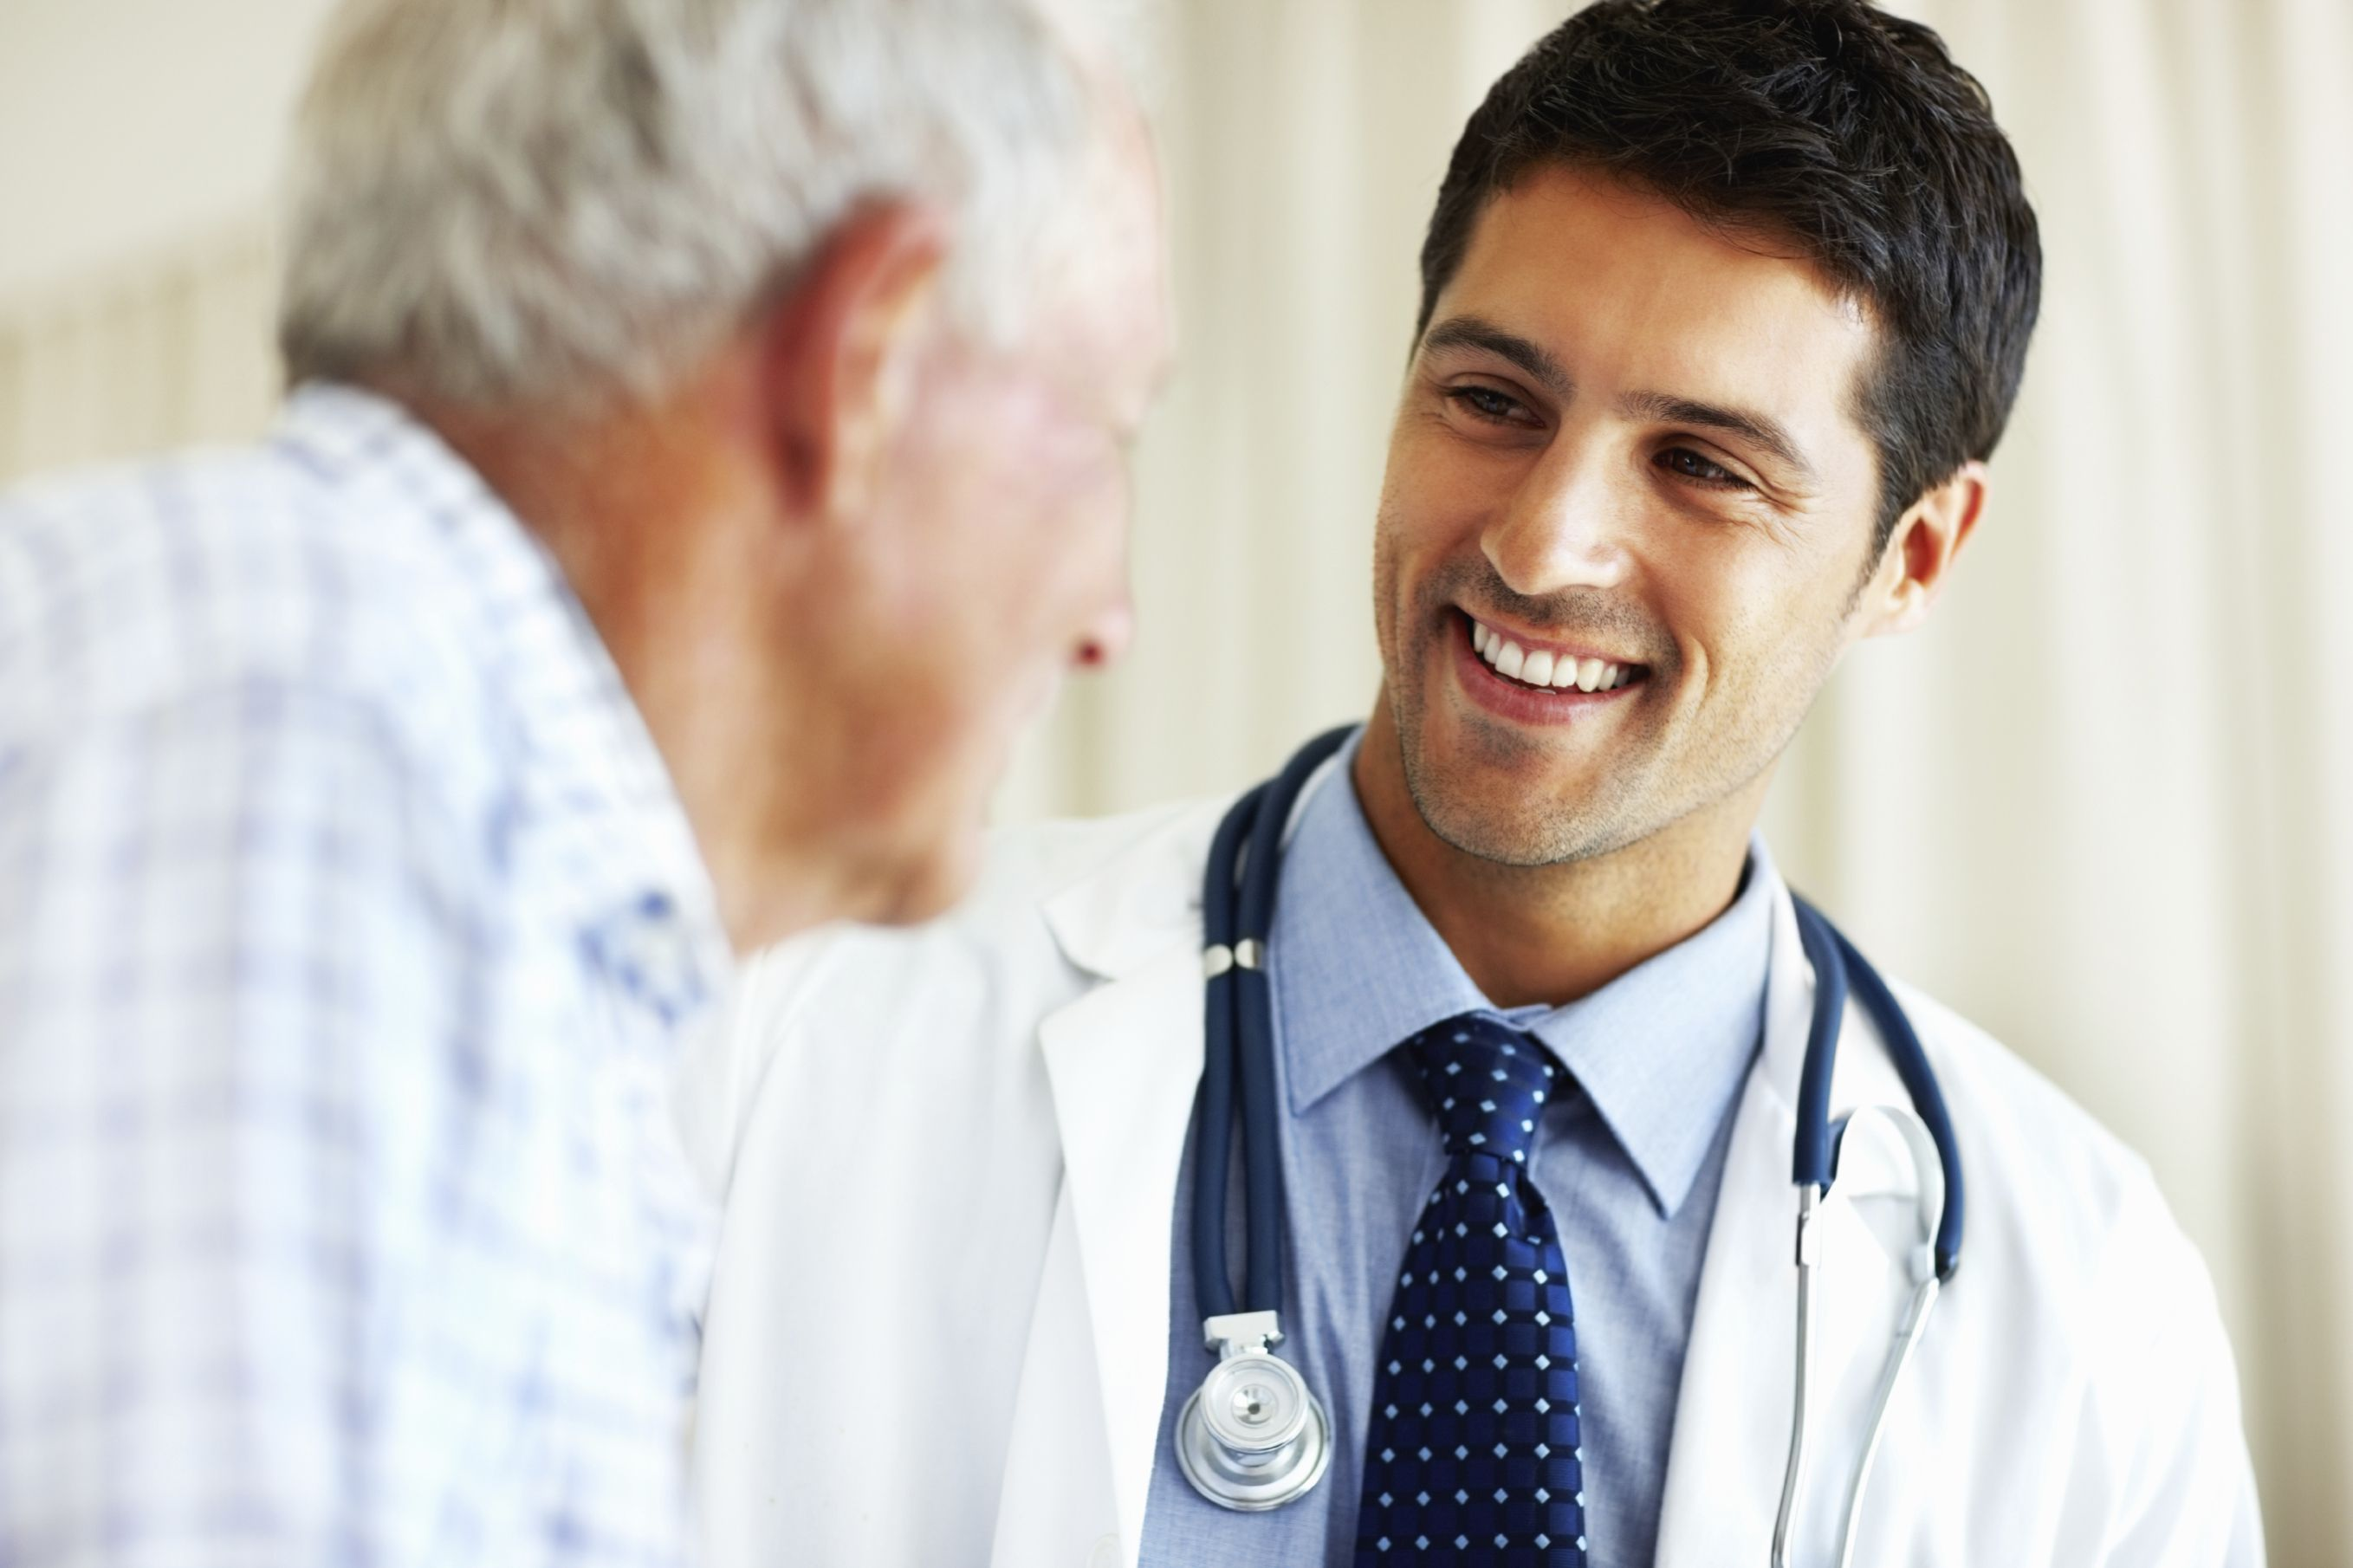 Discussion on this topic: How to Disagree With Your Doctor, how-to-disagree-with-your-doctor/